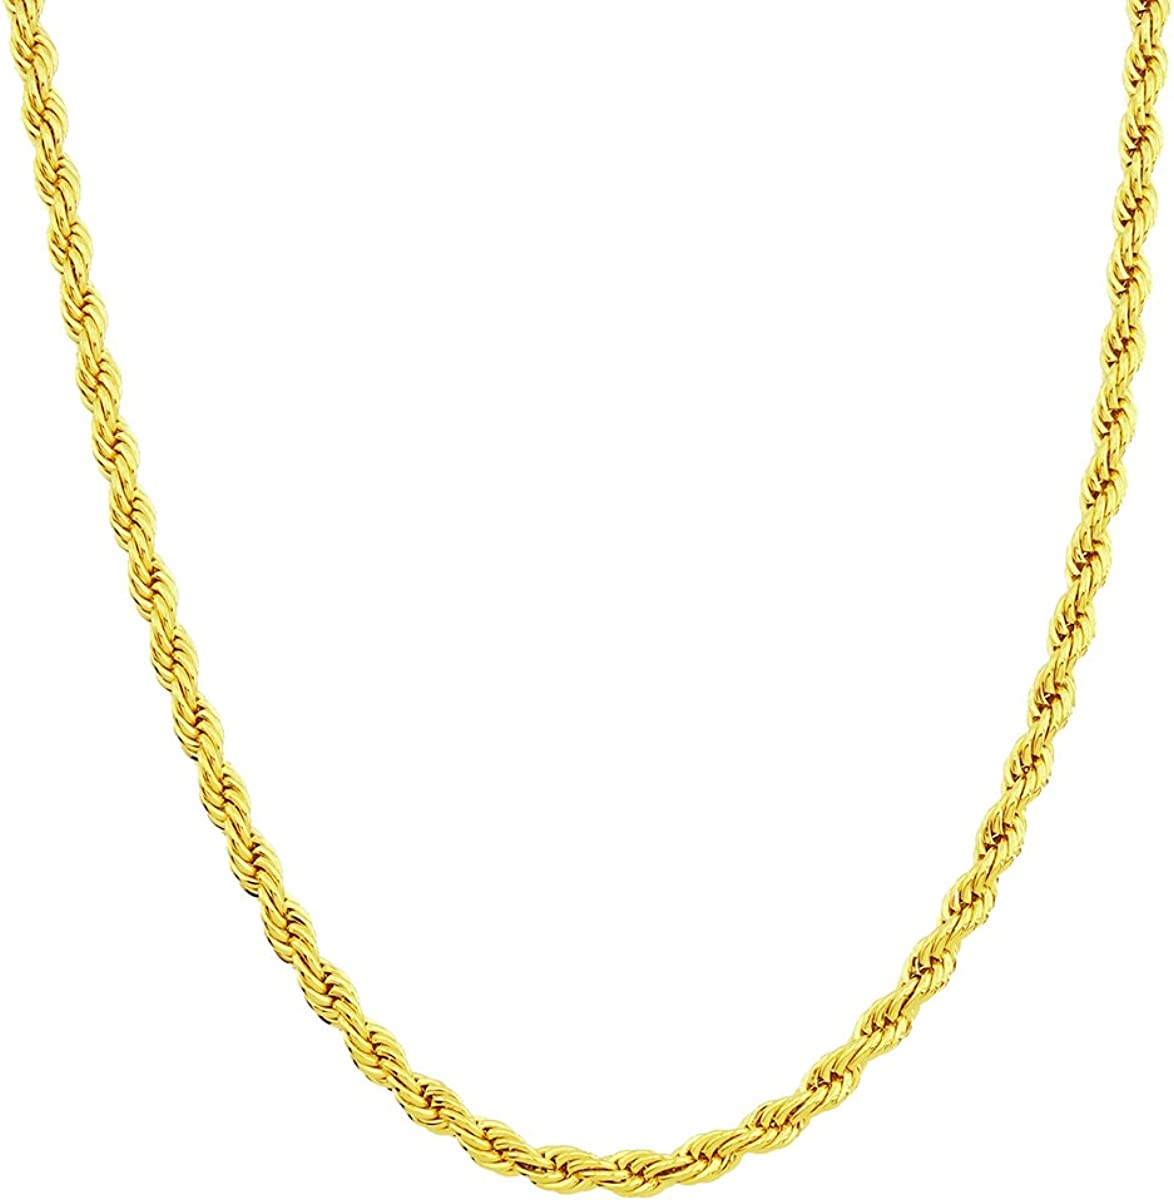 24K Gold Filled Necklace Gold Rope Chain Layering Necklace 1.7 mm 23.6 inch ready to wear chain Rope Necklace